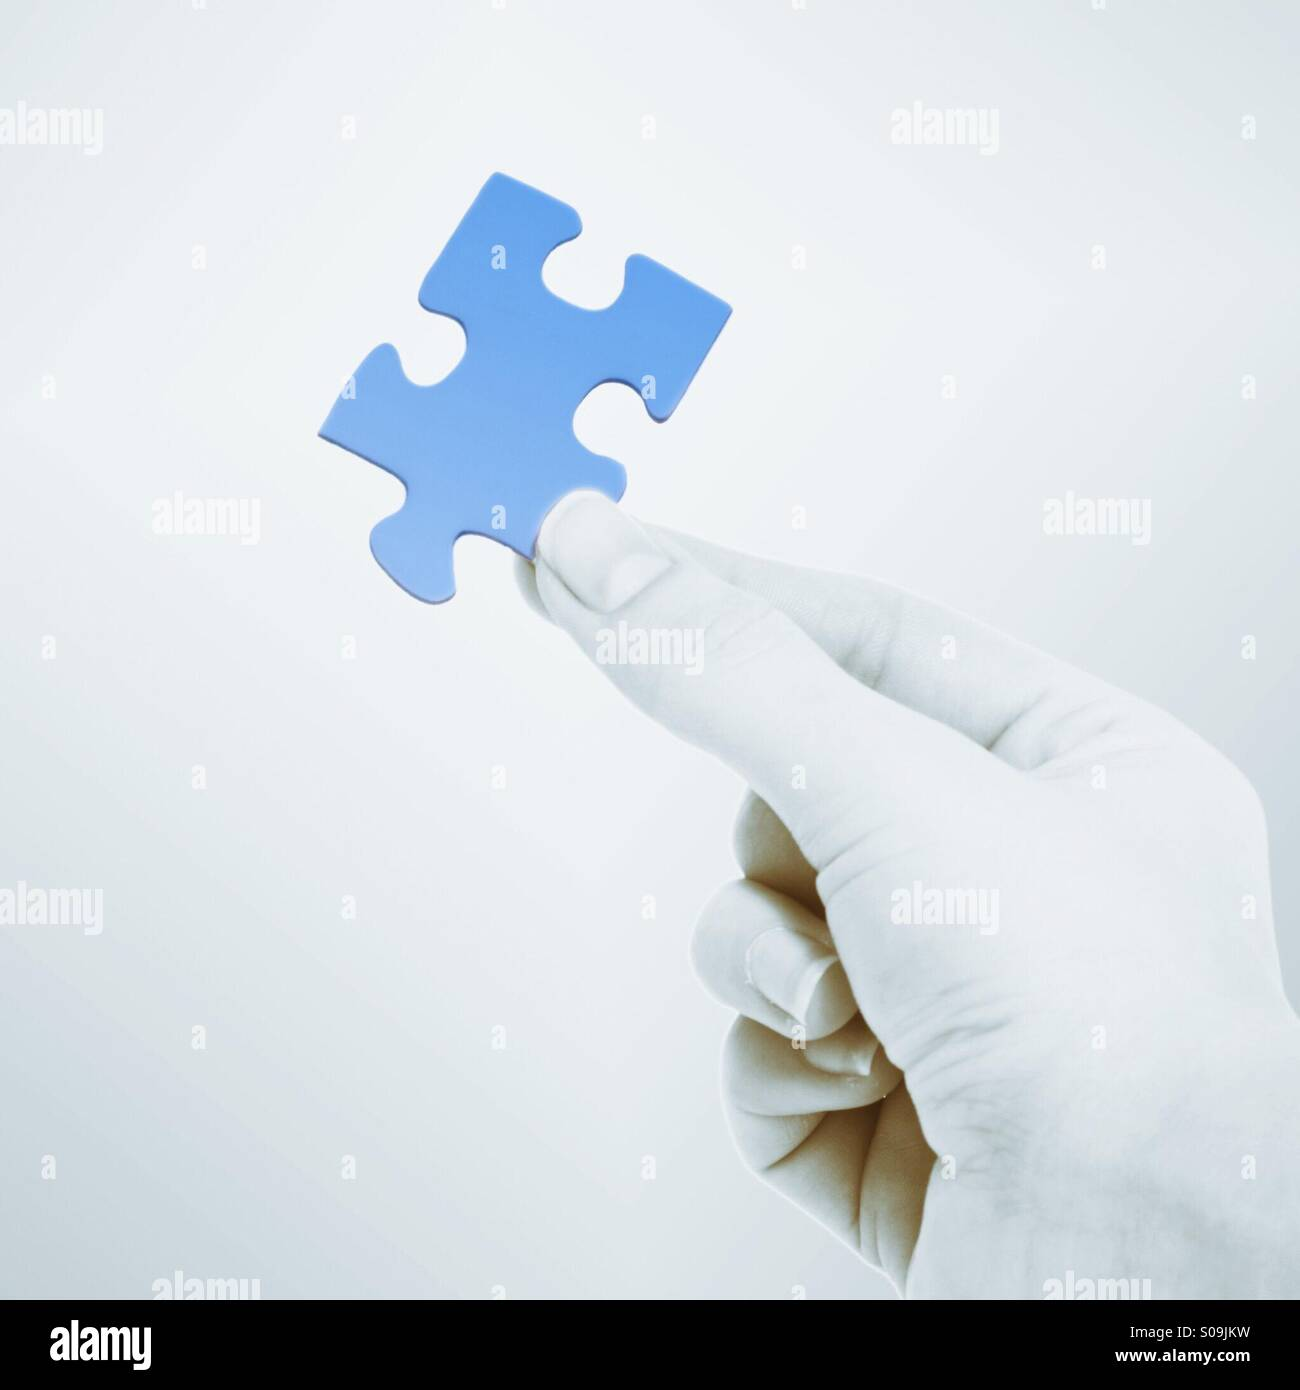 Hand holding piece of jigsaw puzzle - Stock Image